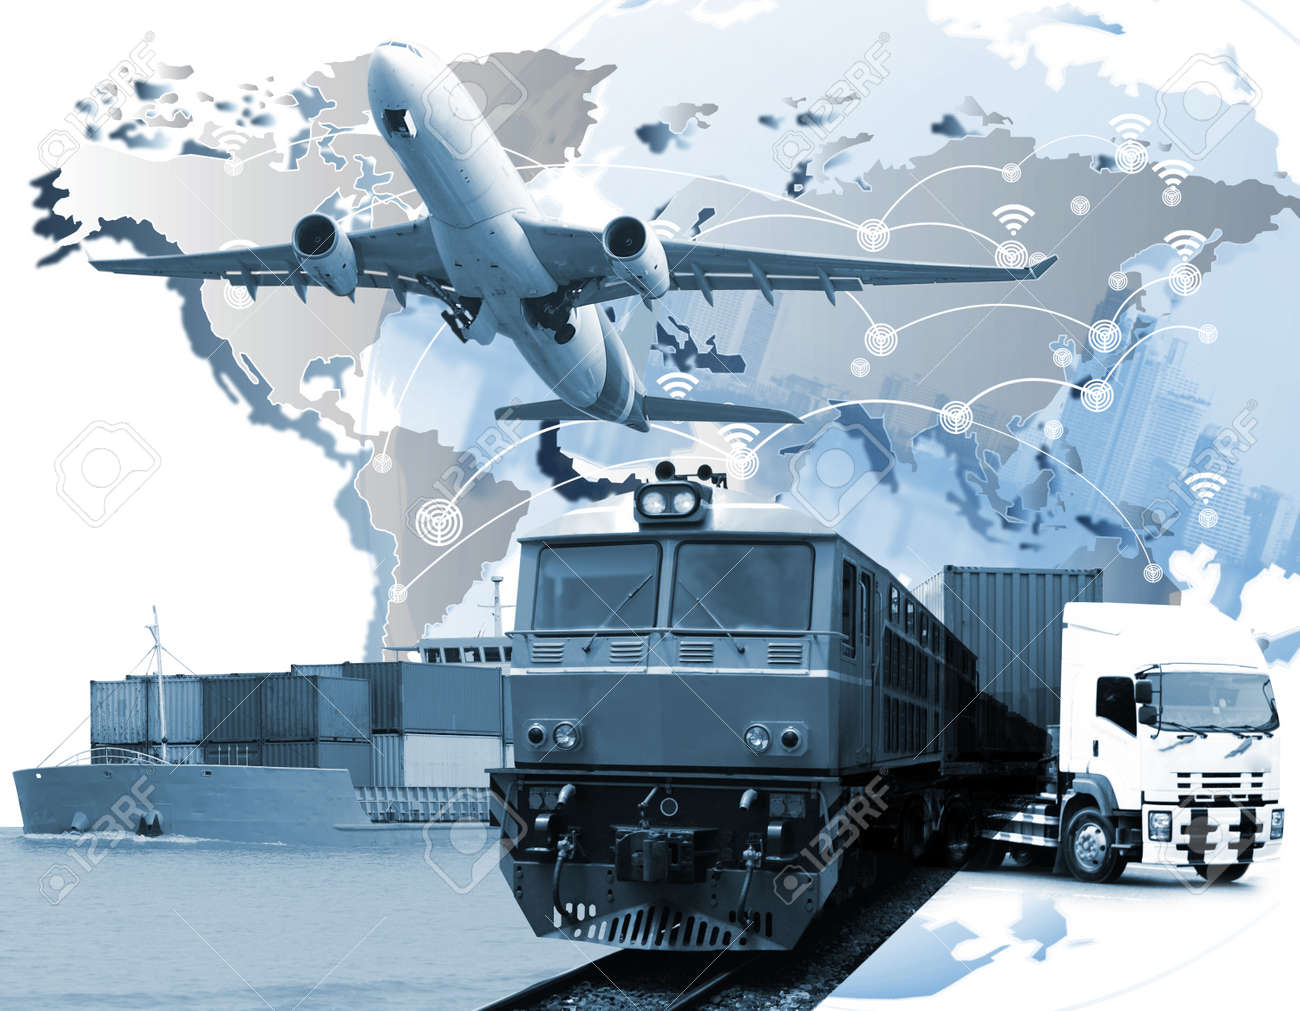 Logistics Transportation   Global Logistics Network Web Site   Stock     logistics transportation   Global logistics network Web site concept  Air  cargo trucking rail transportation maritime